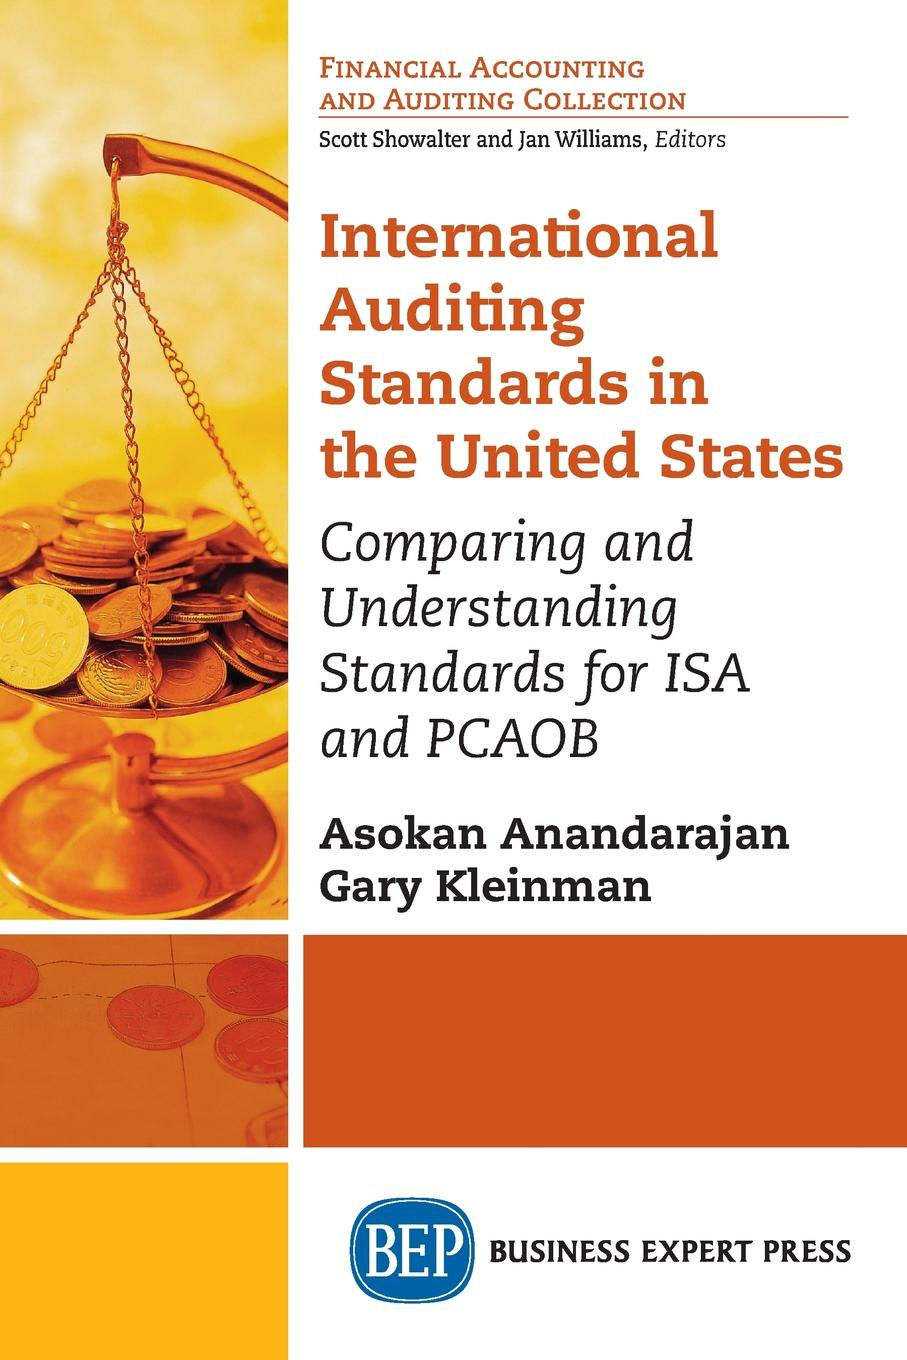 цена на Asokan Anandarajan, Gary Kleinman International Auditing Standards in the United States. Comparing and Understanding Standards for ISA and PCAOB